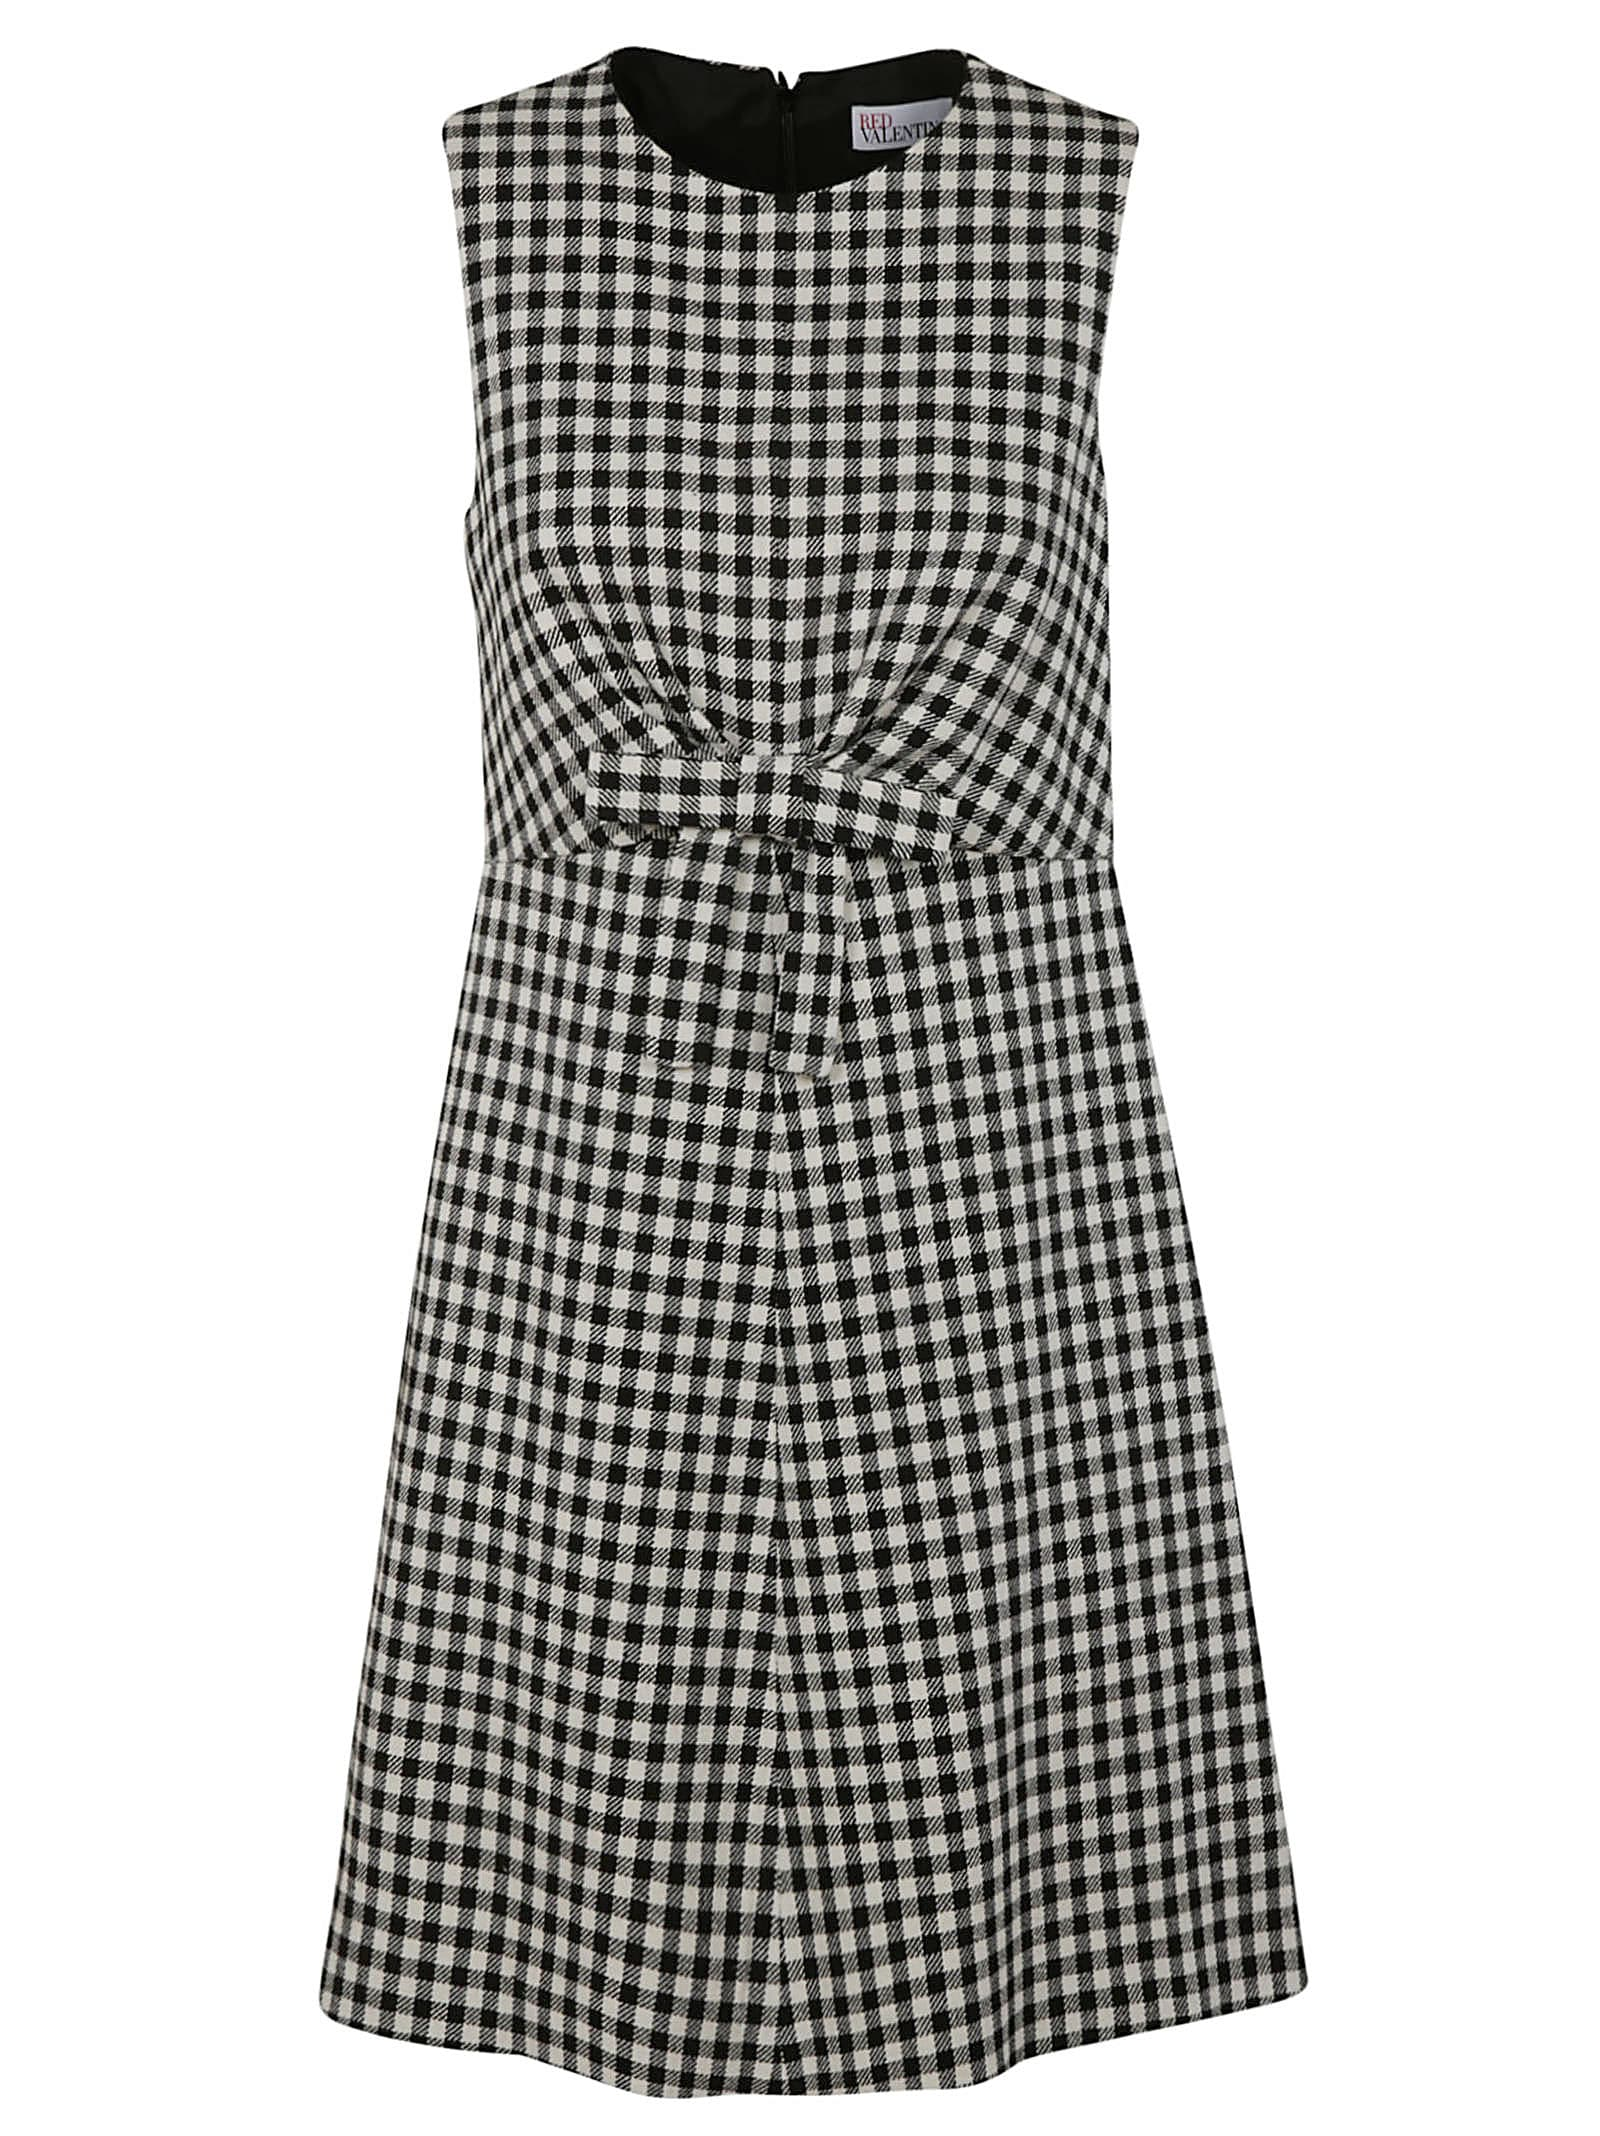 Sleeveless Checked Dress from RED ValentinoComposition: 38% Cotton, 34% Acrylic, 17% Polyester, 11% Wool